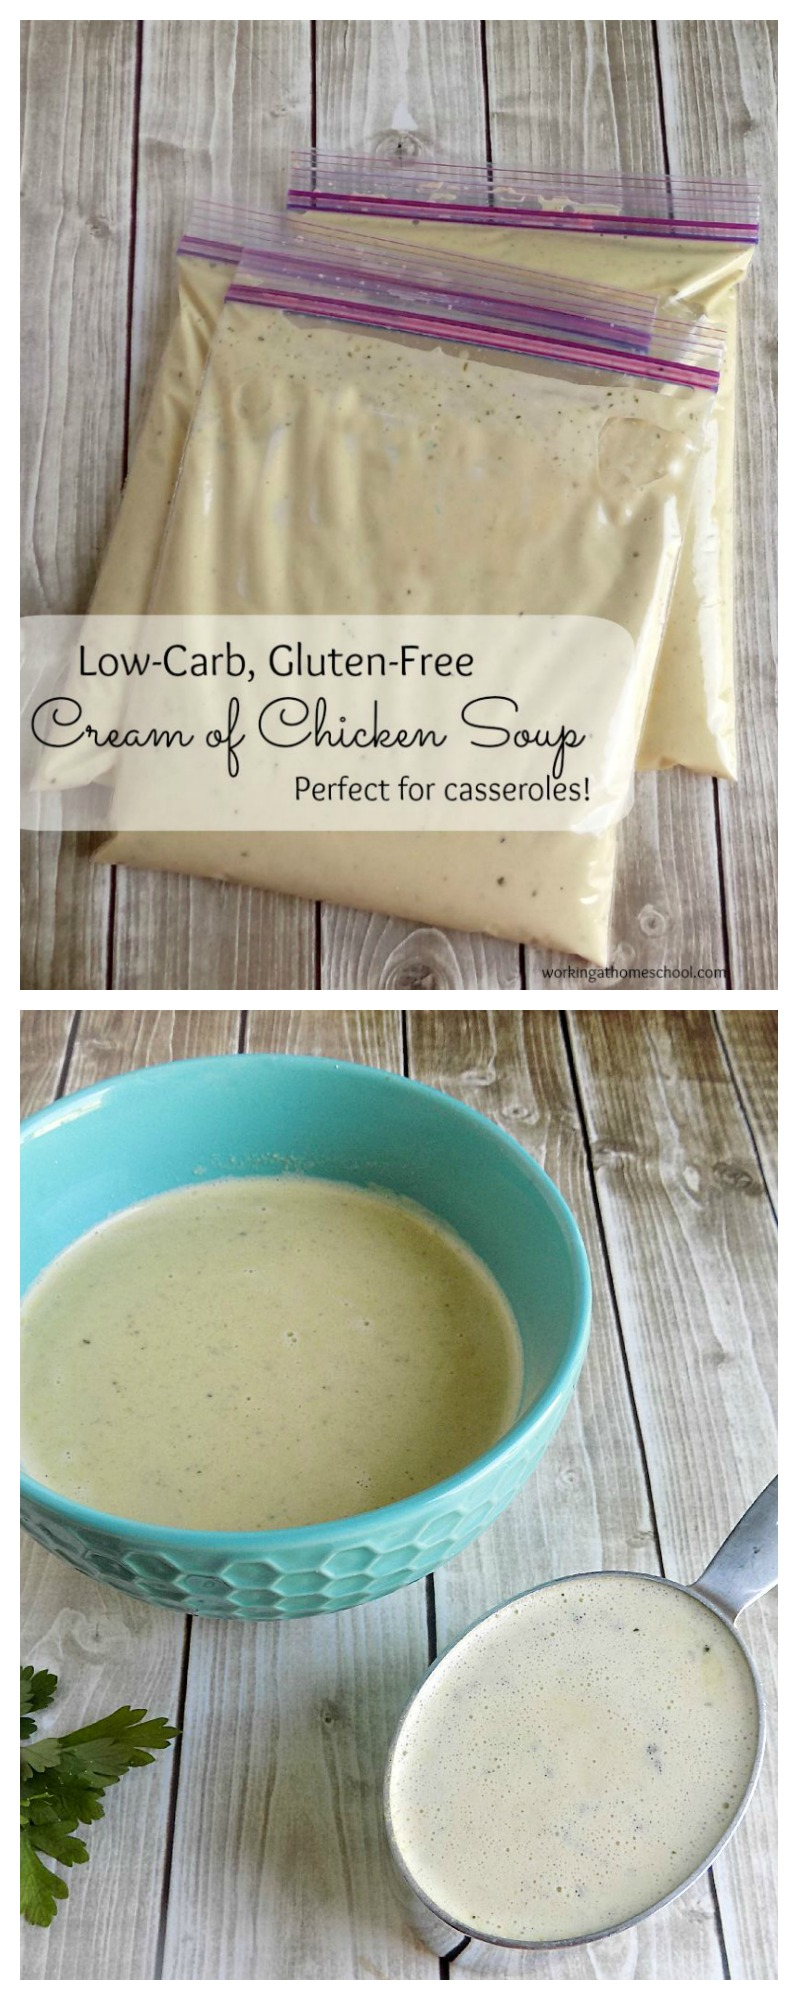 Low carb cream of chicken soup! This freezable recipe works for Trim Healthy Mama and Atkins, and it's keto-friendly too! Perfect by itself or in casseroles.